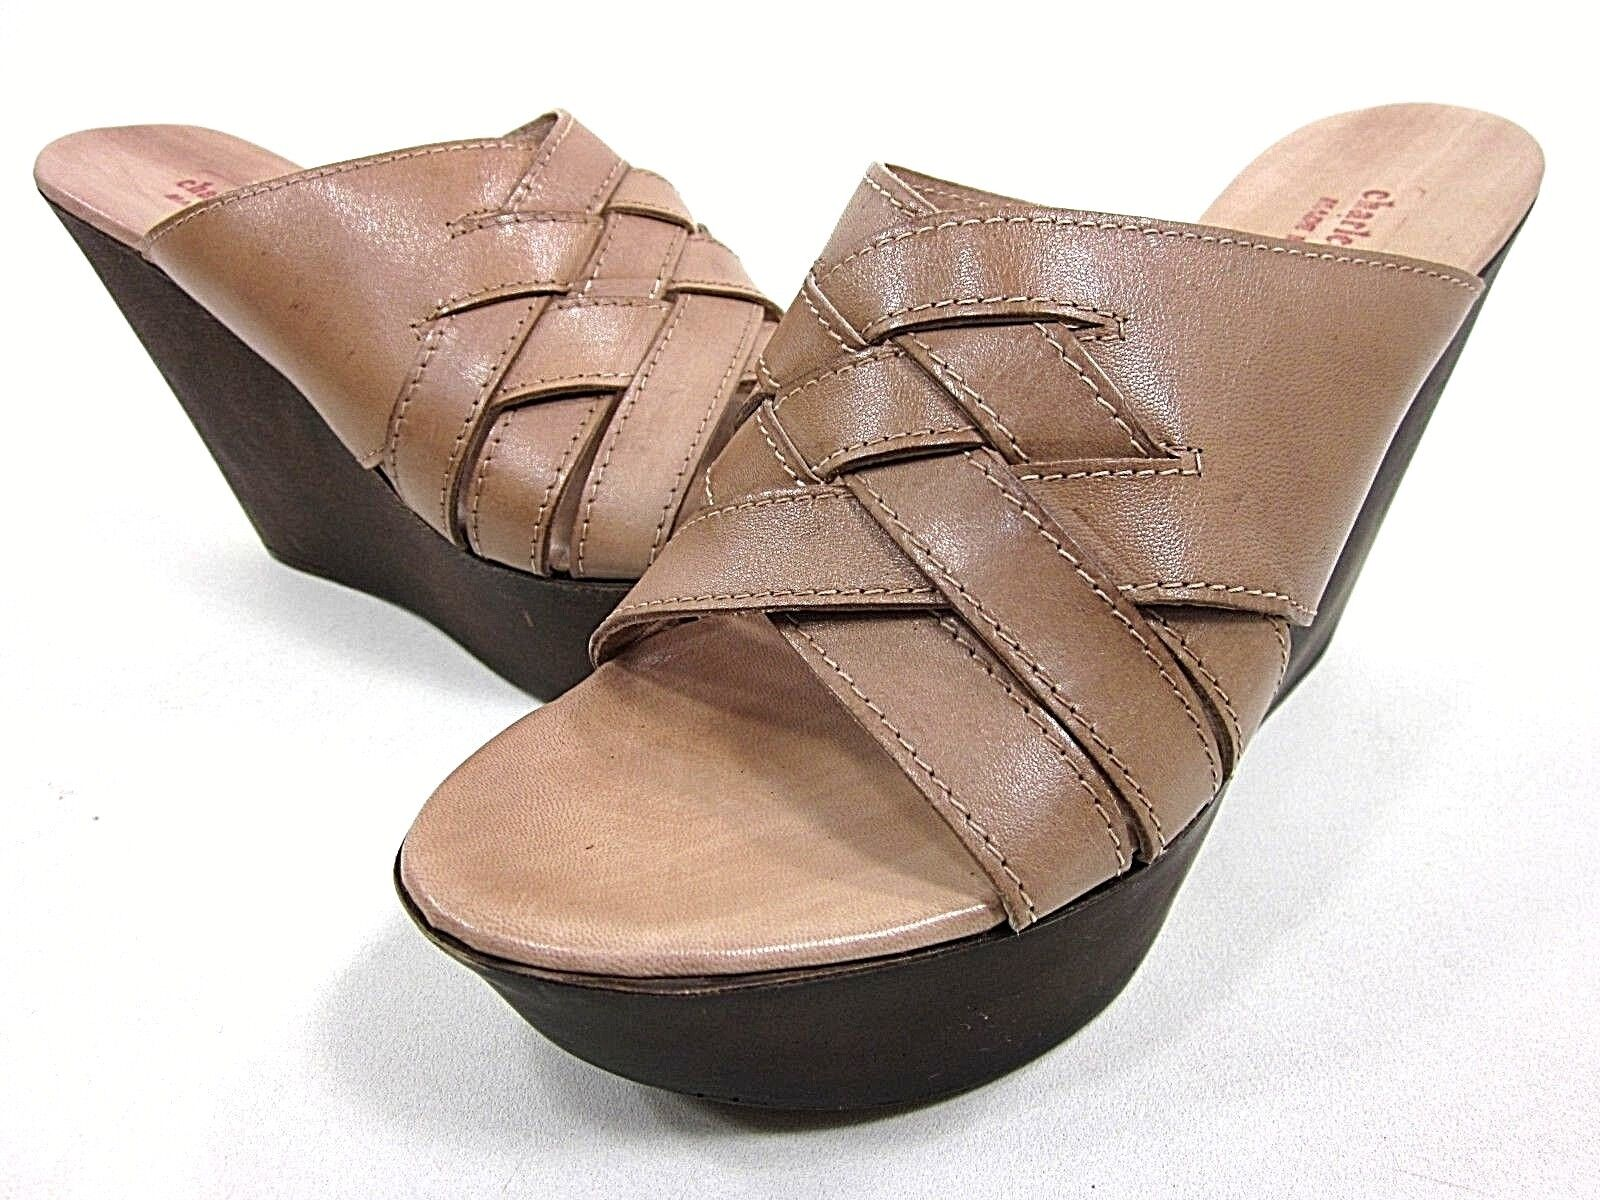 CHARLES DAVID ANGY WEDGE SANDAL donna CAMEL CAMEL CAMEL US Dimensione 8M LEATHER PRE-OWNED e51154